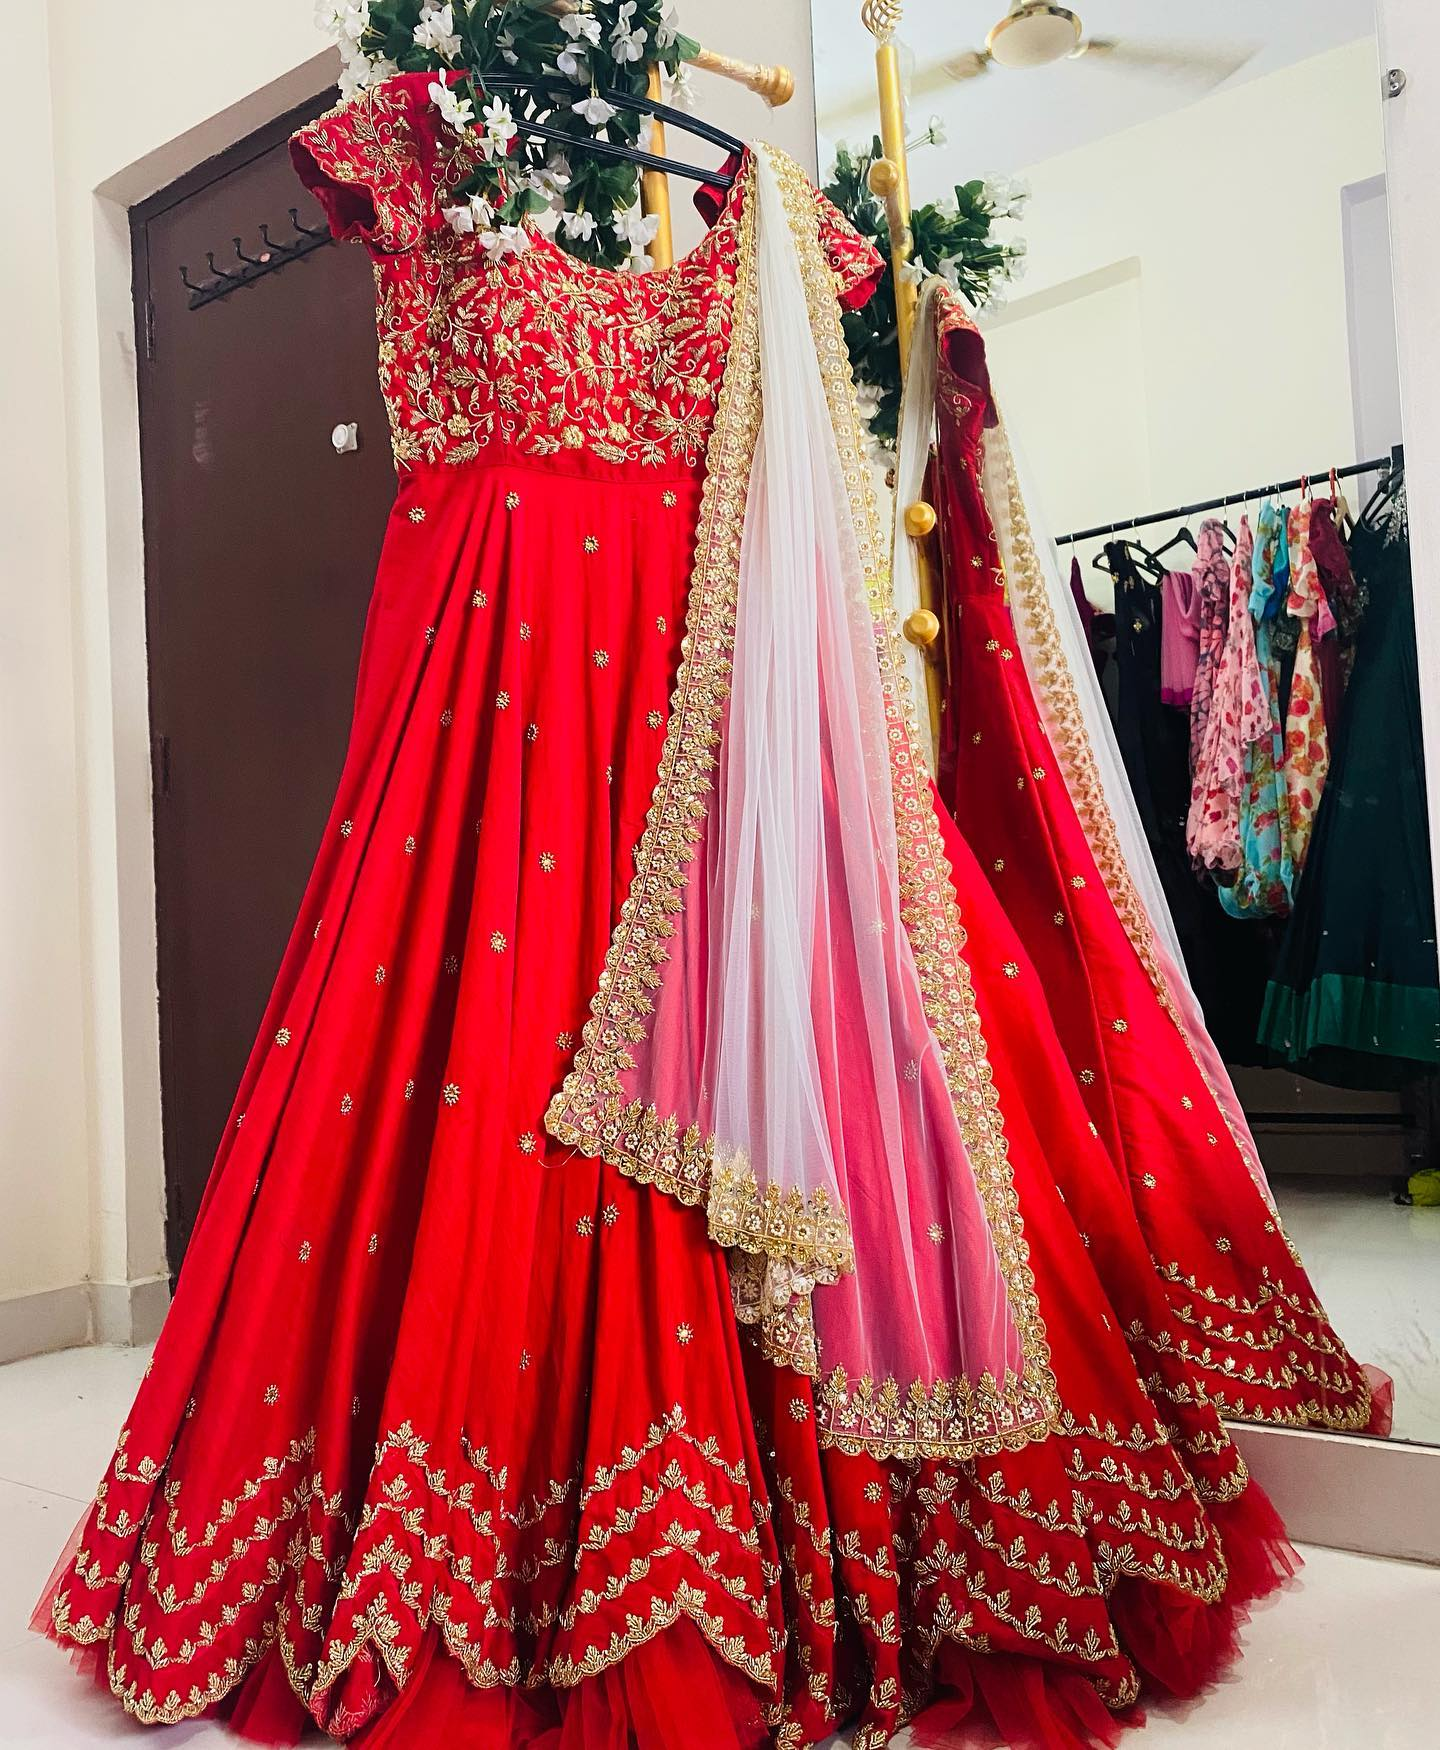 Customised red long gown with zari zardosi all over work 2021-04-01